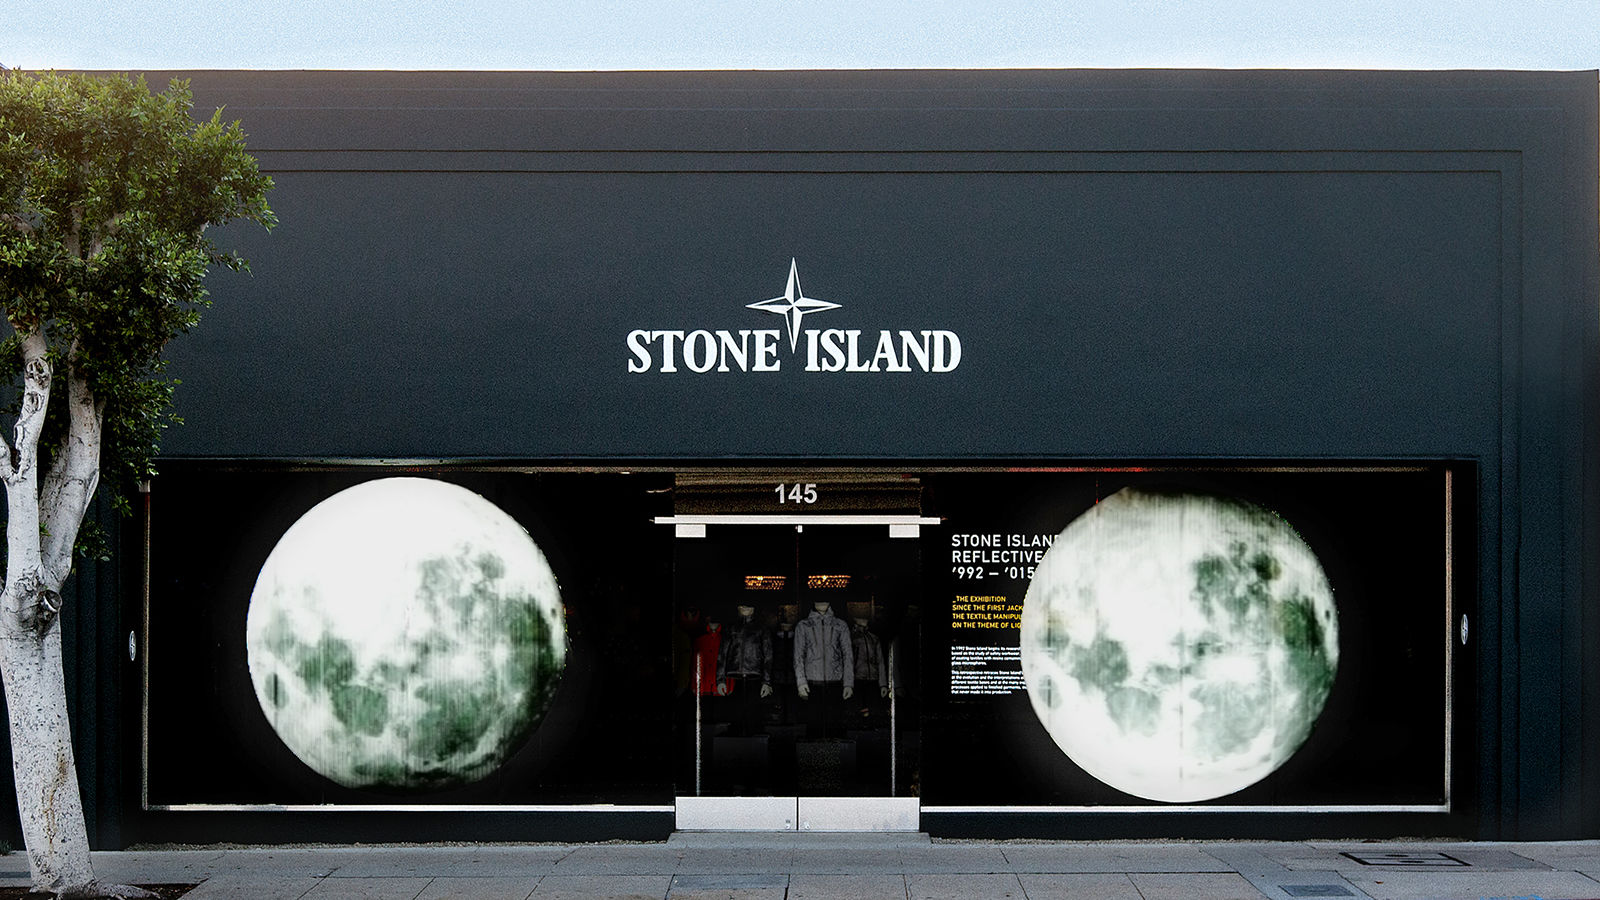 stone island opens los angeles store stone island corporate. Black Bedroom Furniture Sets. Home Design Ideas